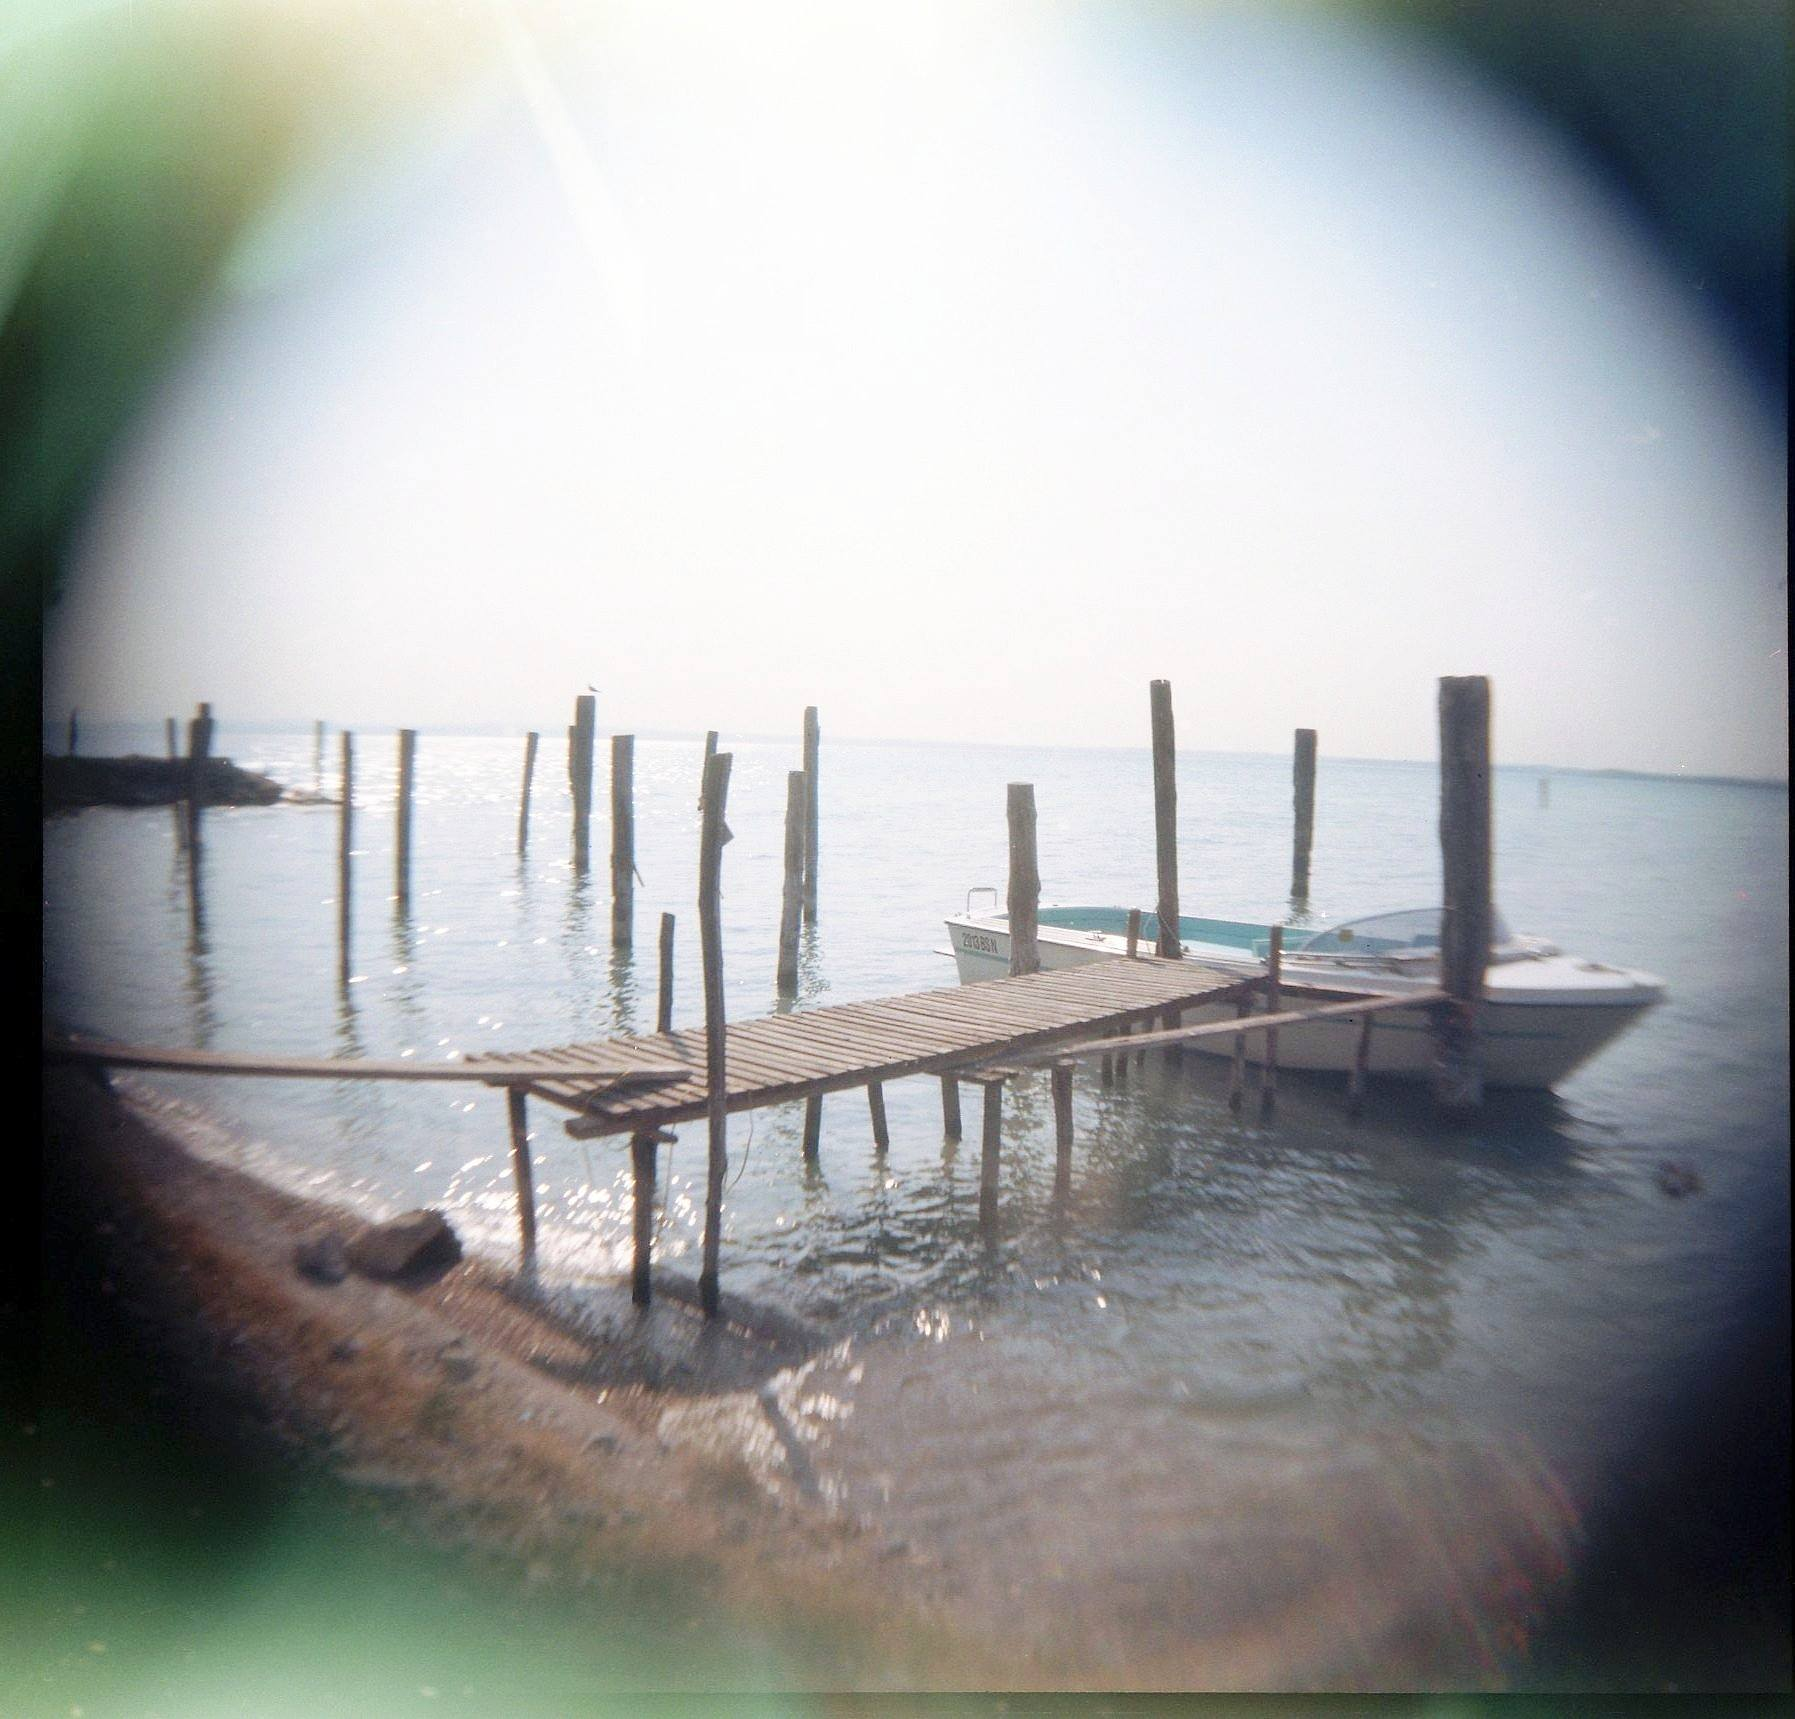 I shot this image on a Holga, a camera with no controls at all.